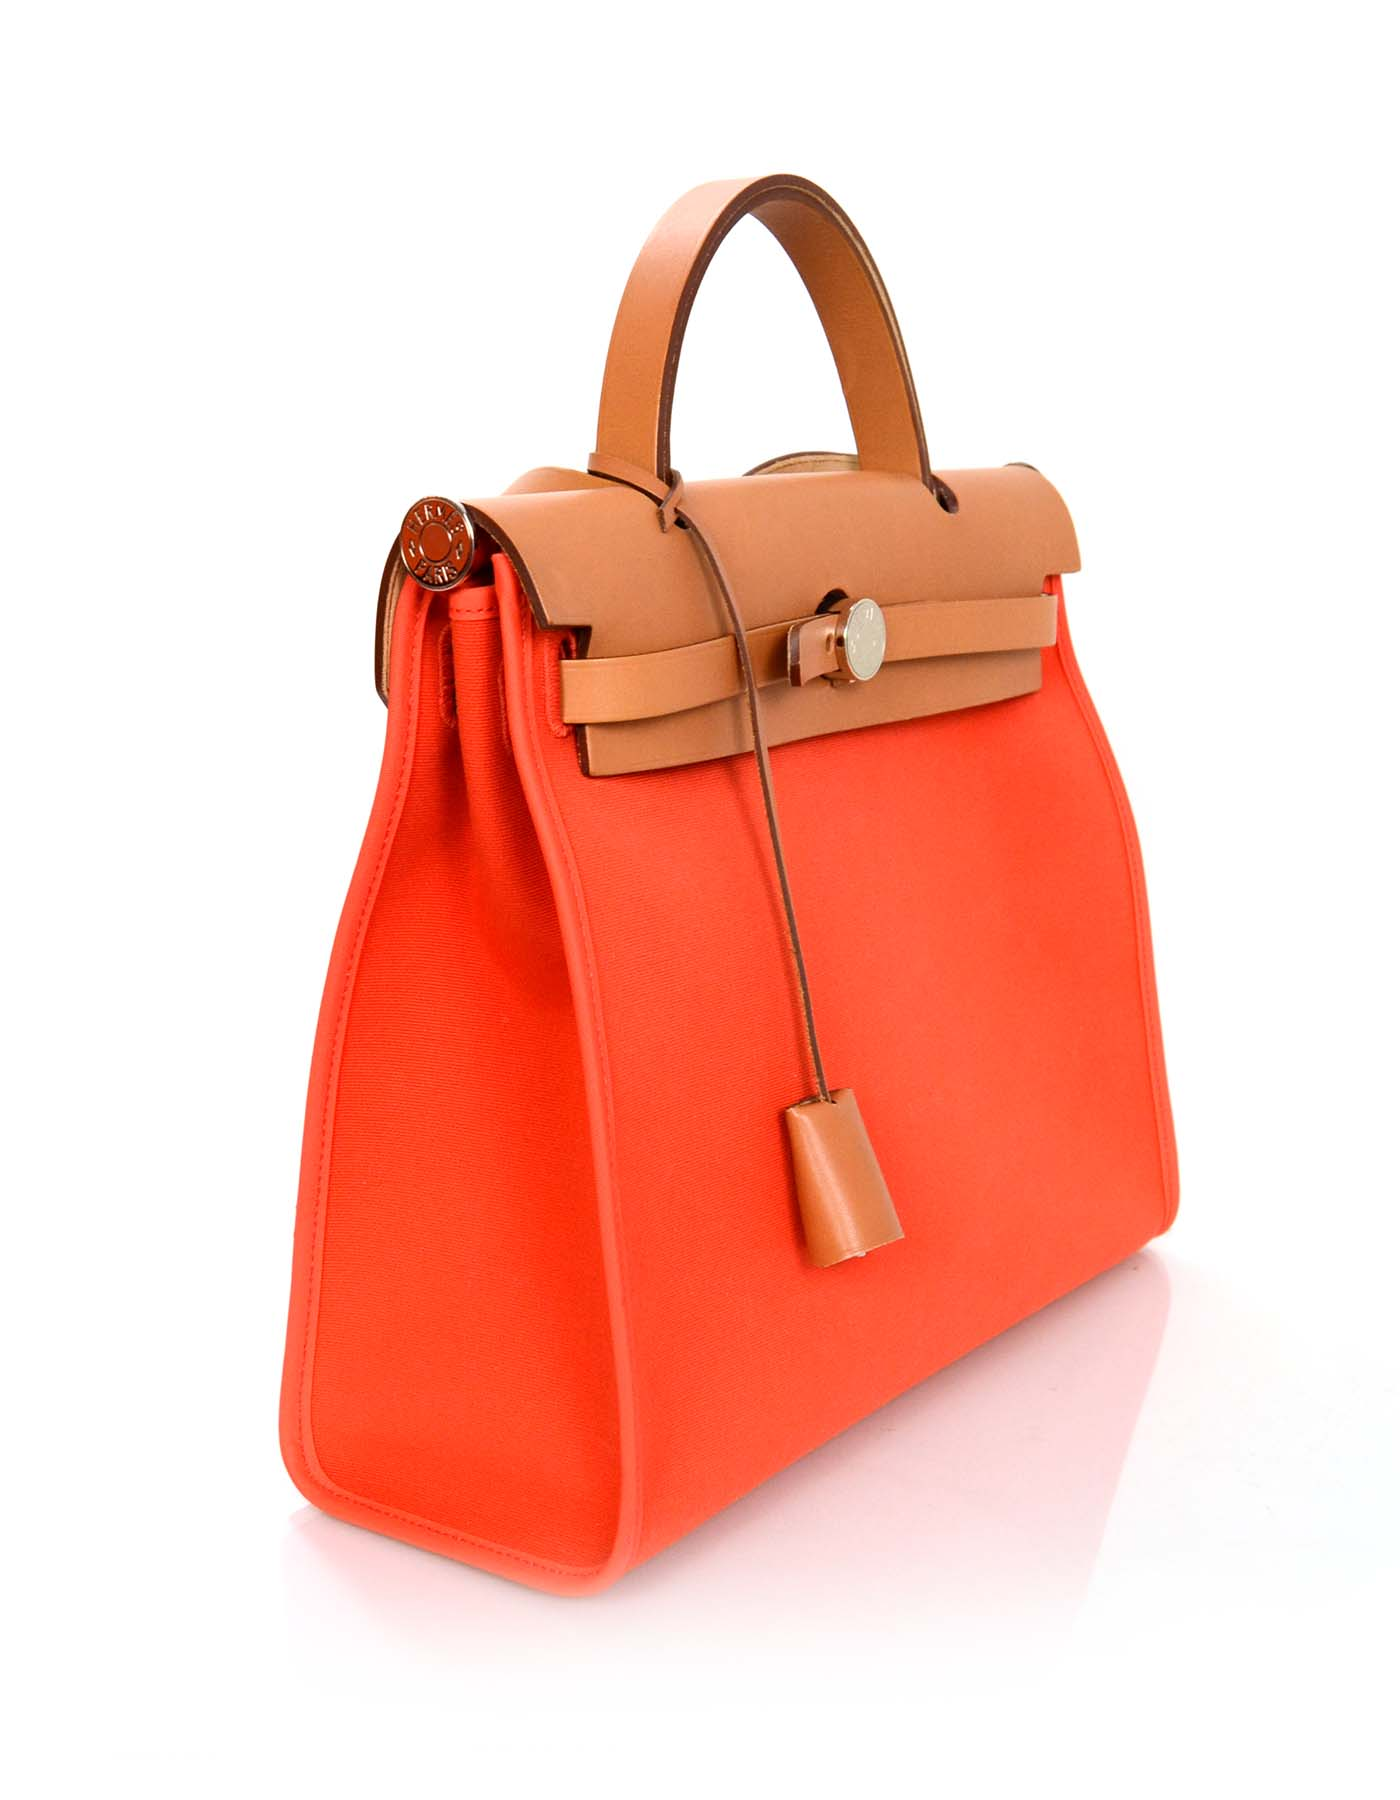 7a43614f1f89 Hermes 2015 Orange Canvas and Tan Leather Herbag Zip 31 PM w  Box and Dust  Bag For Sale at 1stdibs